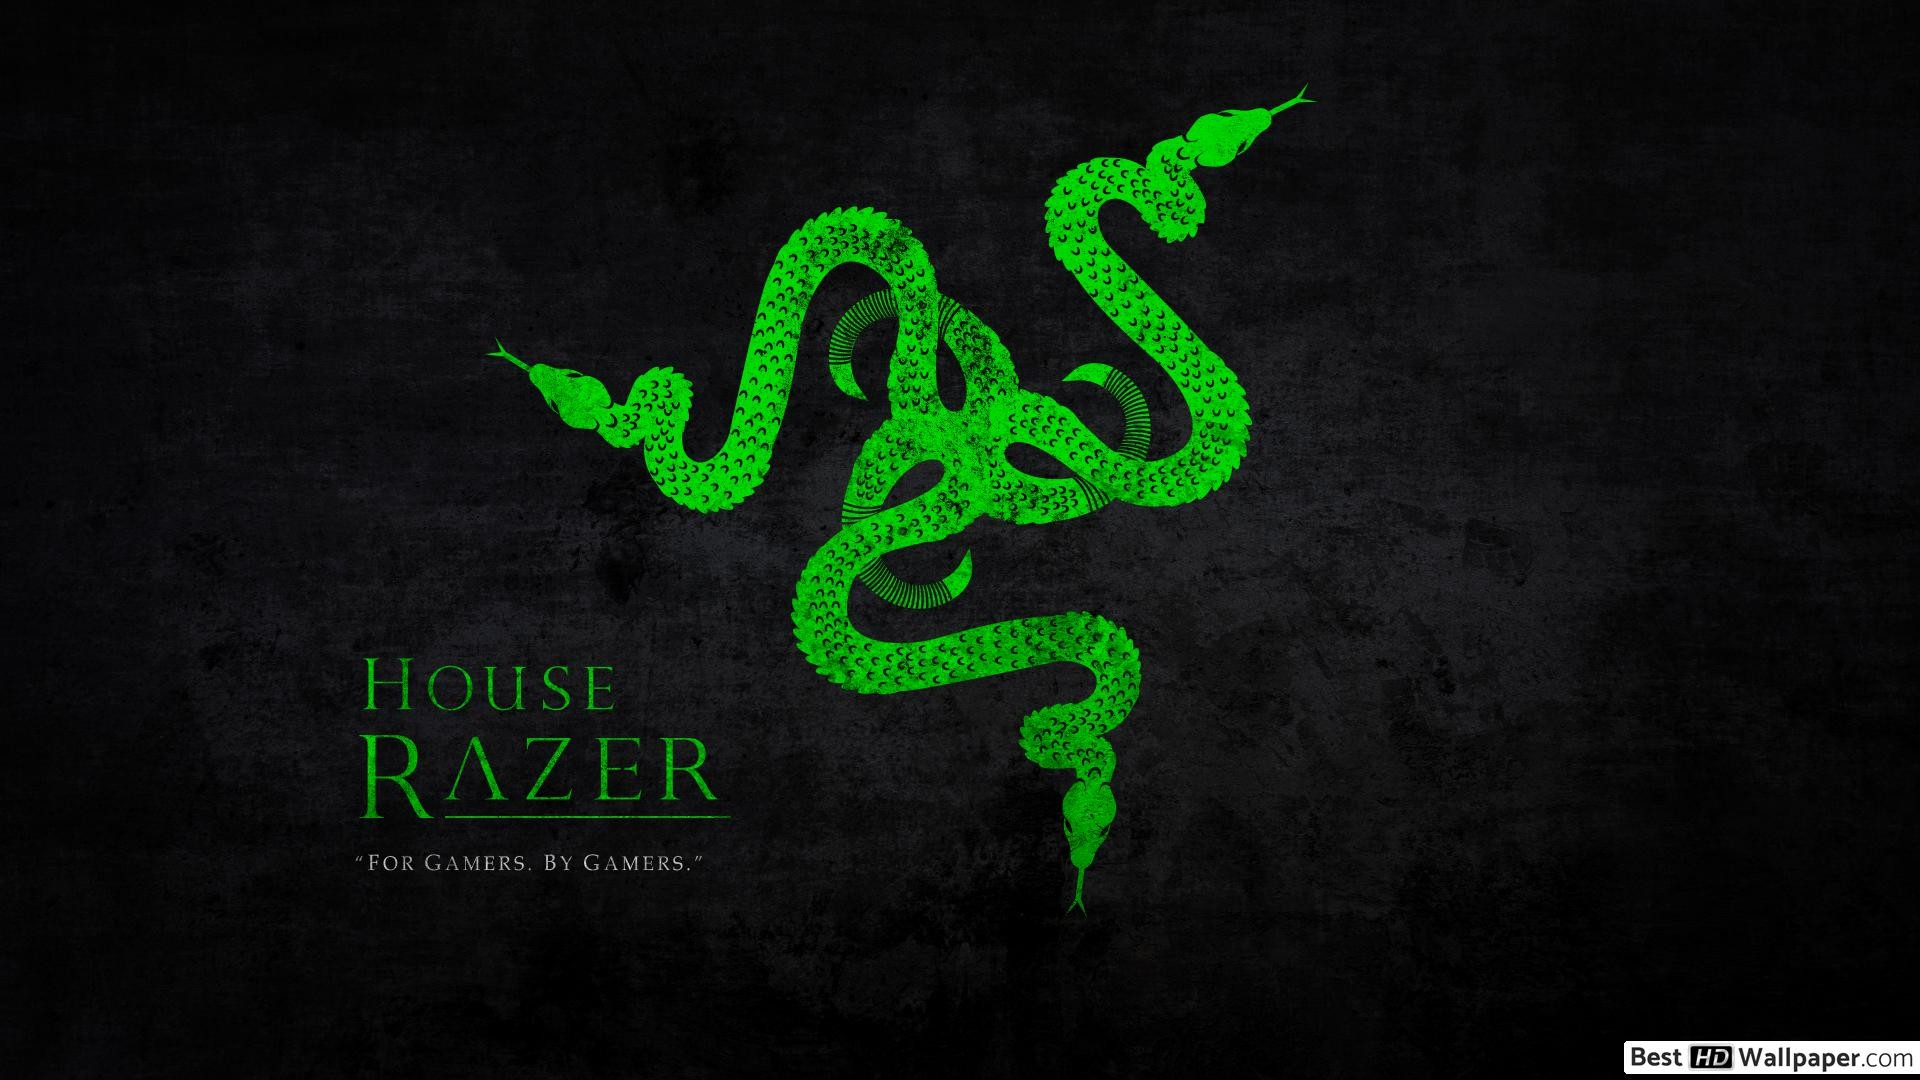 Res: 1920x1080, Download House razer for gamers by gamer wallpaper